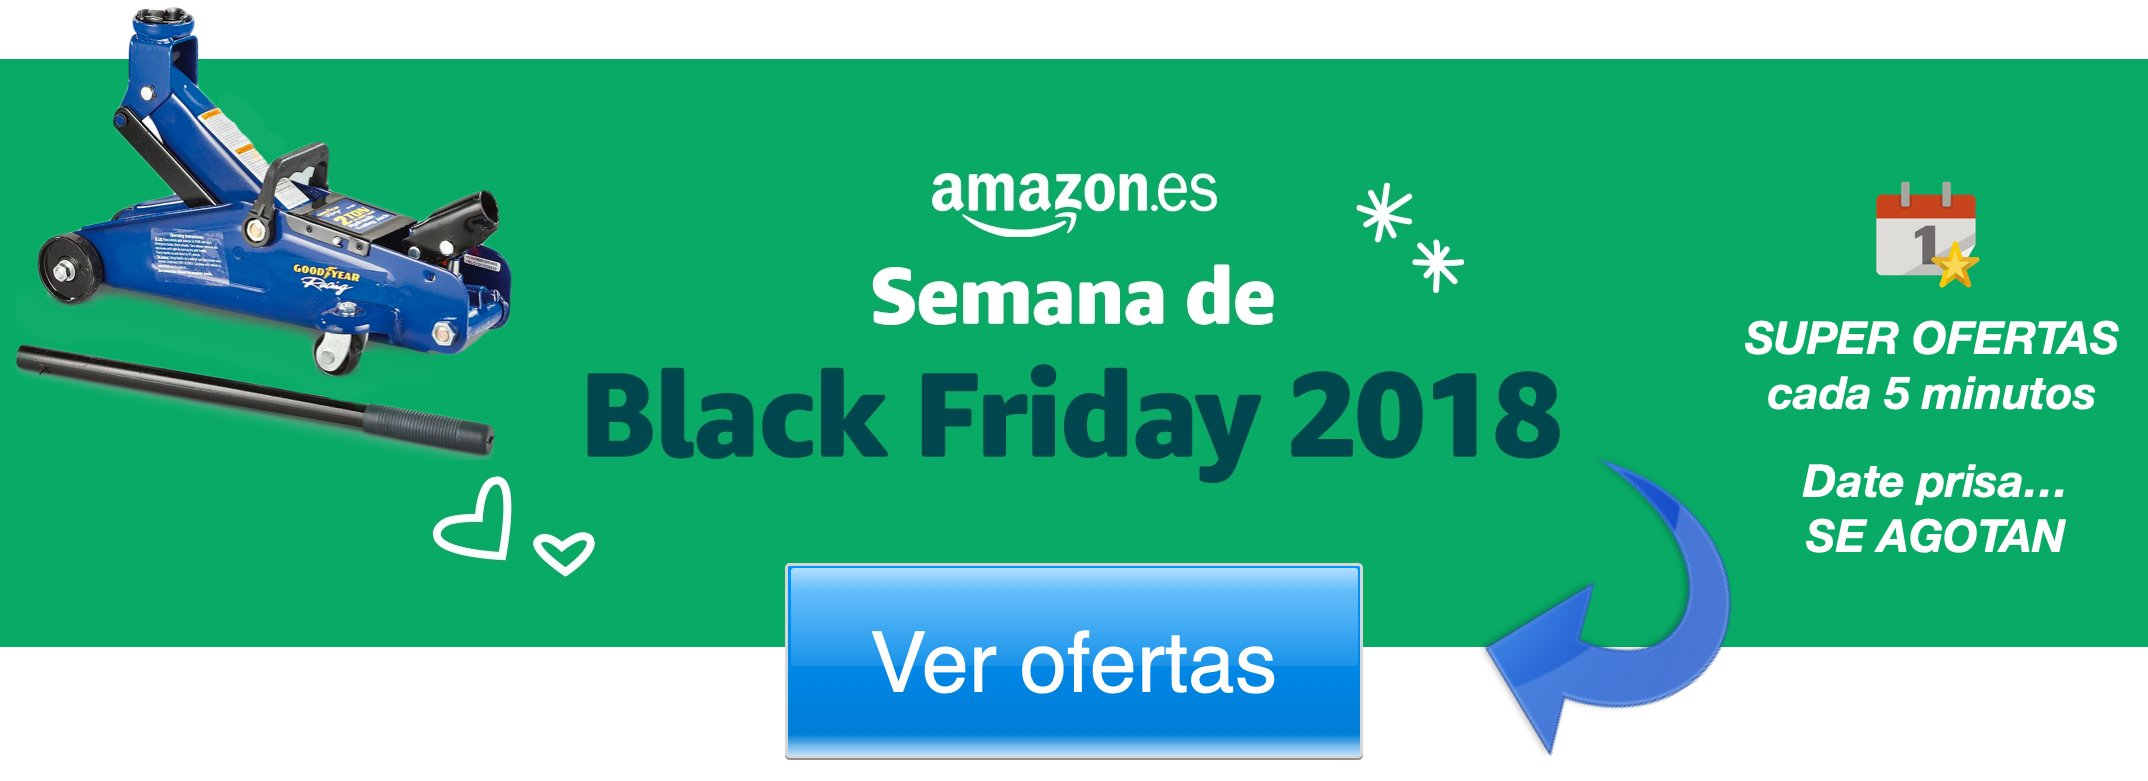 Banner amazon black friday Gato hidraulico camion